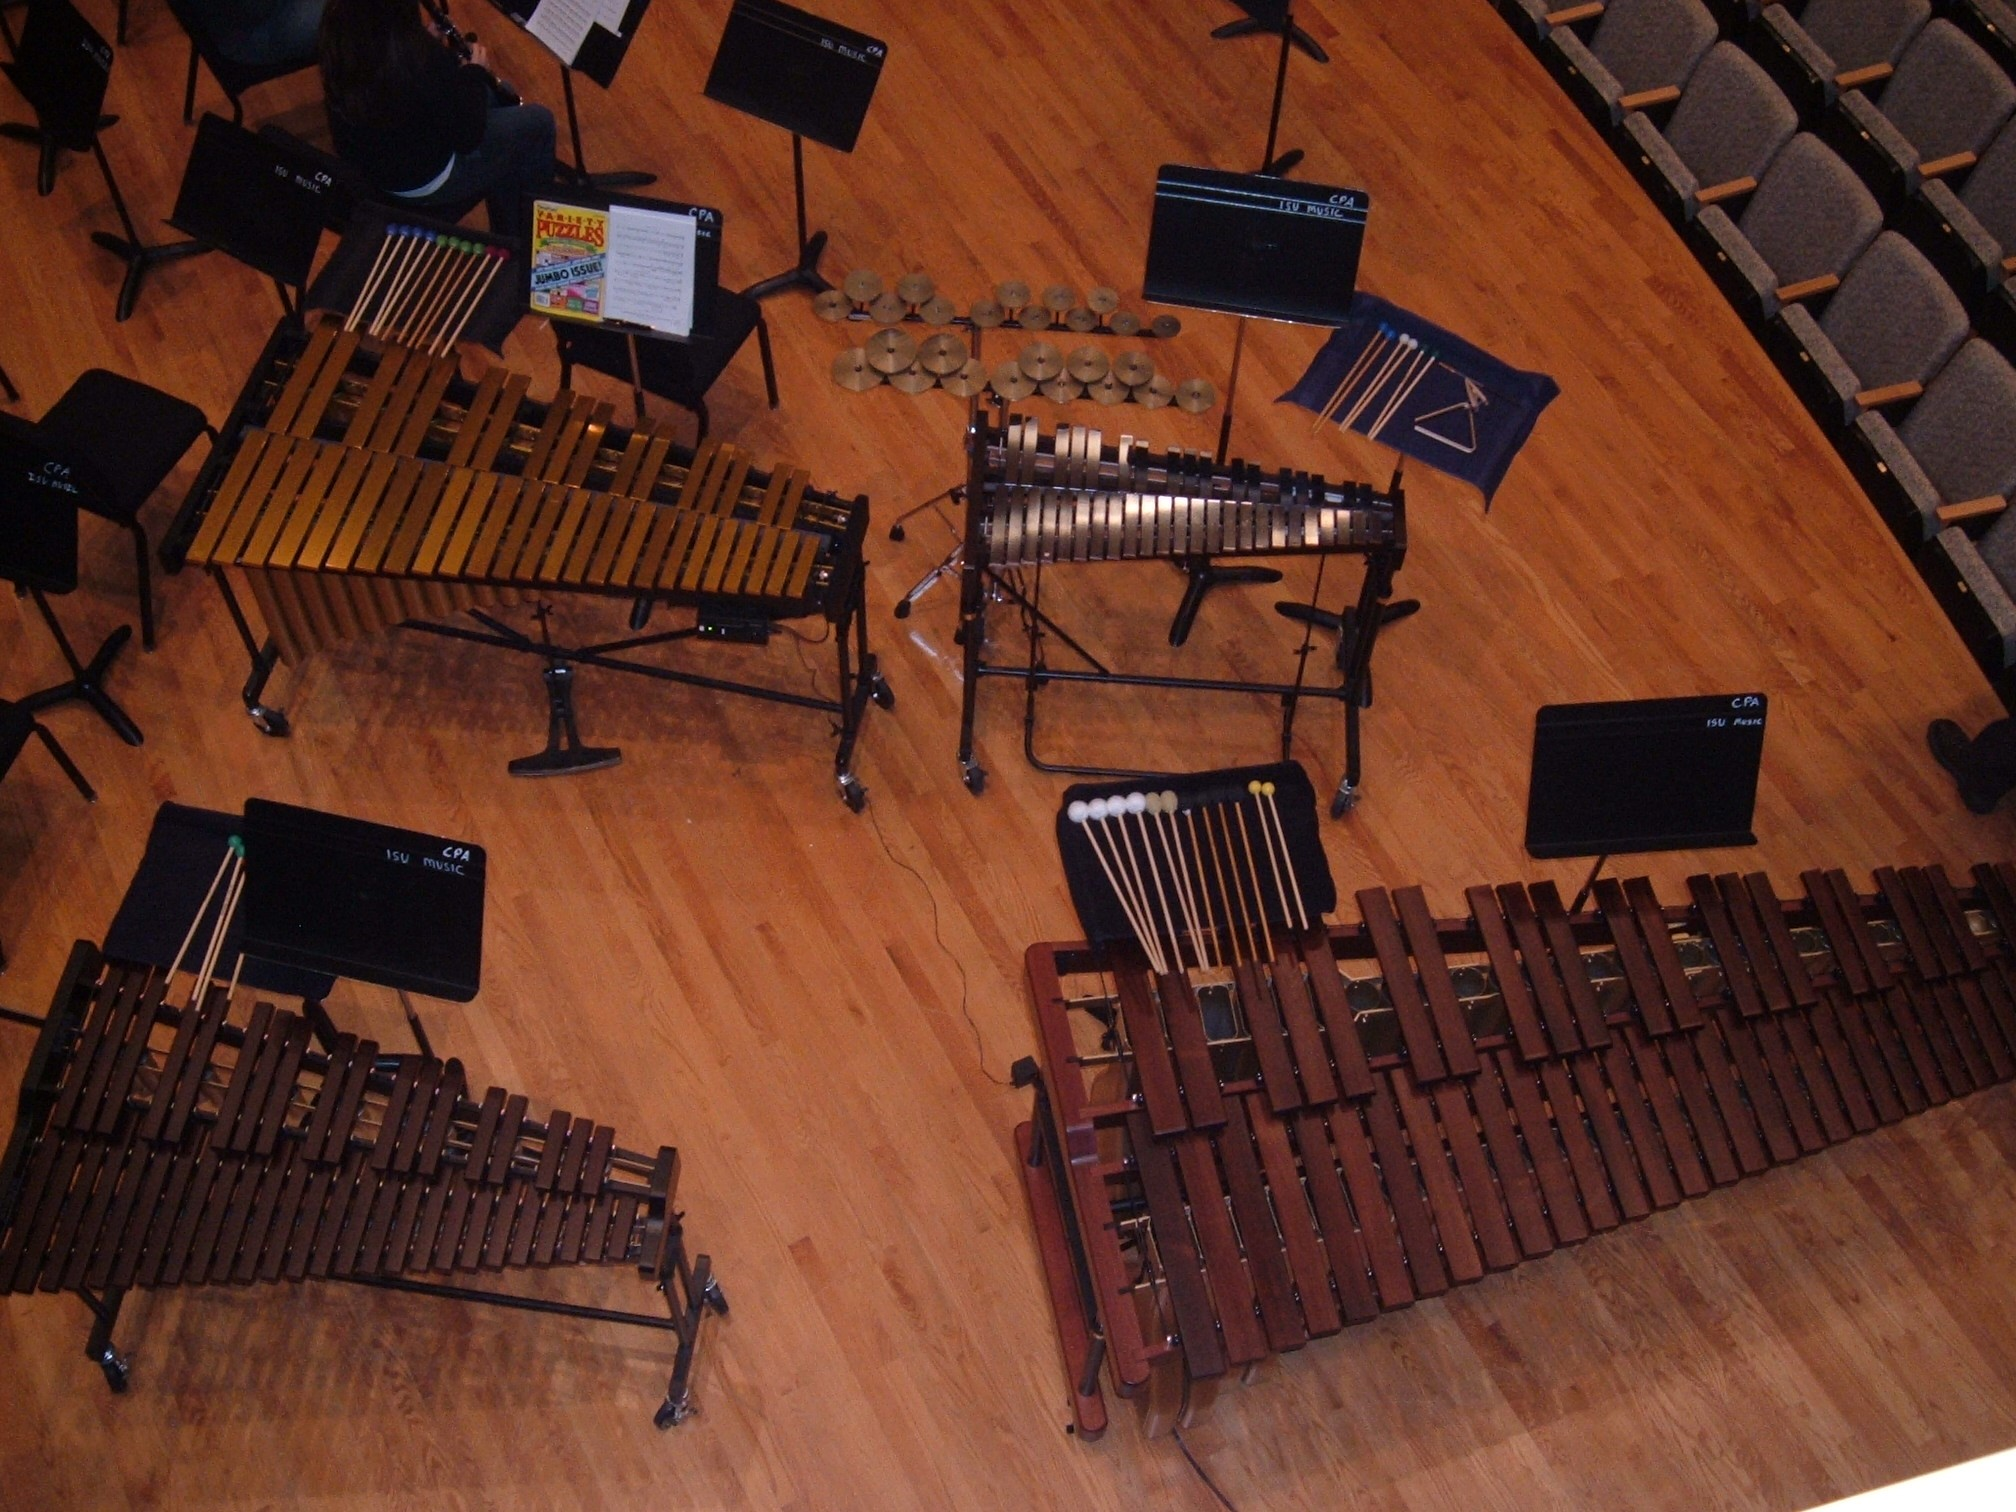 photo of percussion instruments